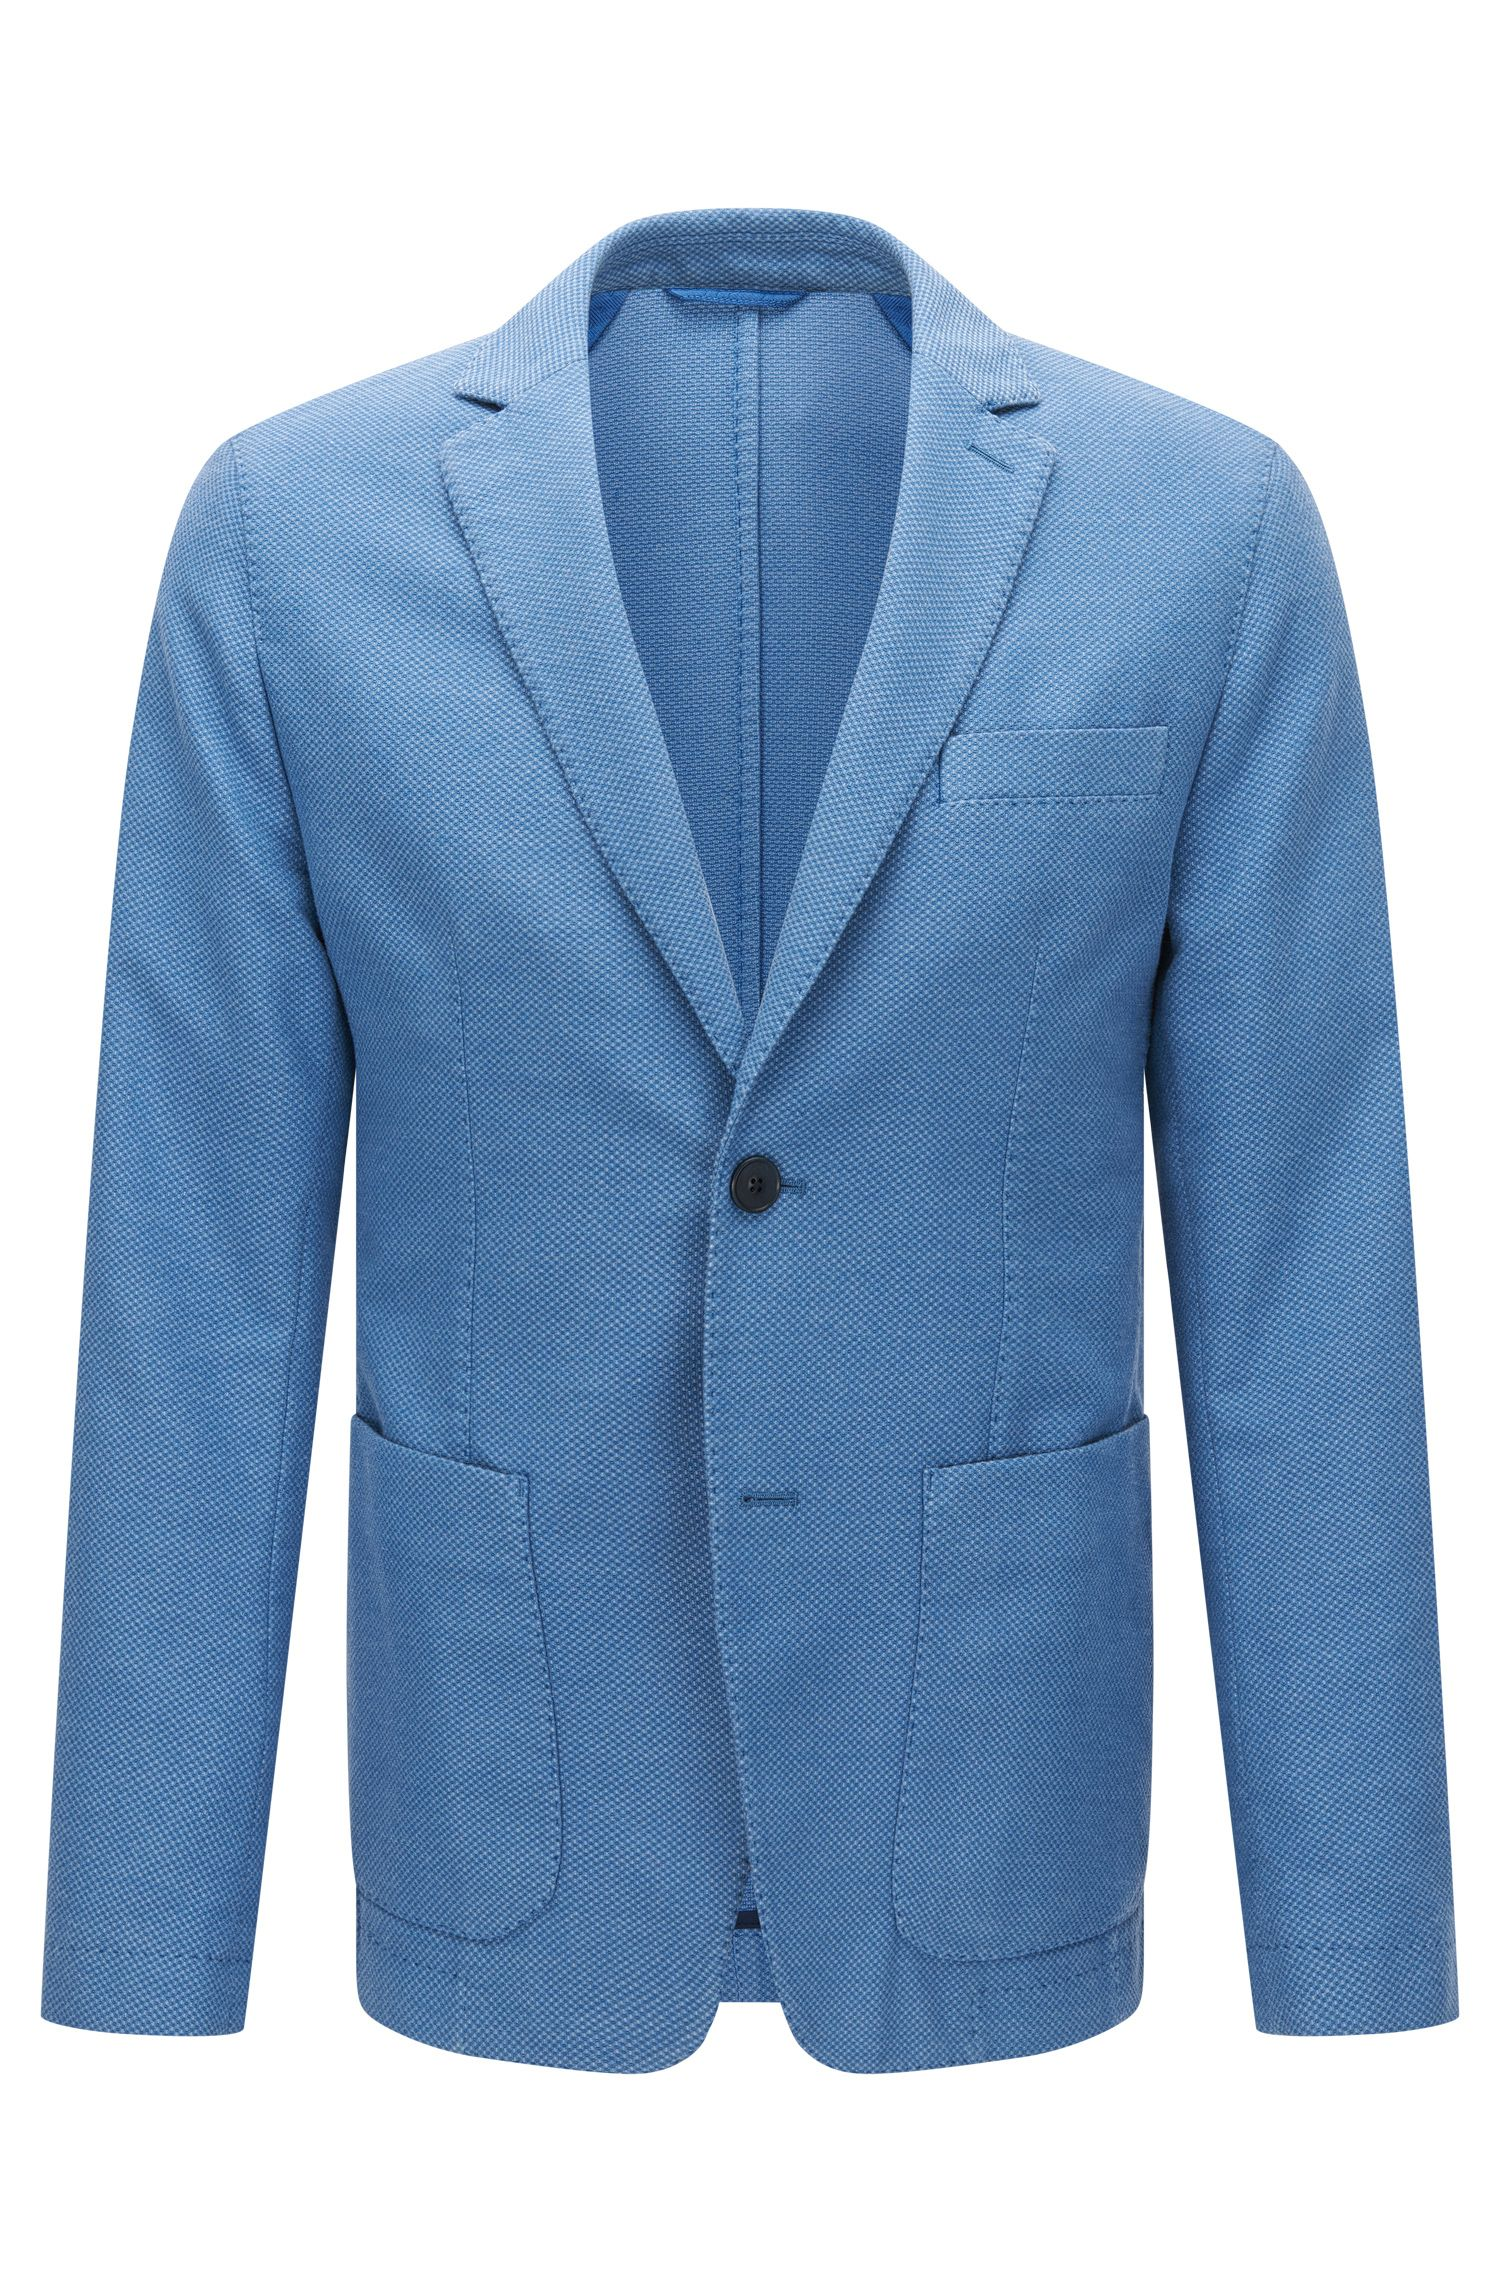 Slim-fit suit jacket in textured garment-dyed fabric